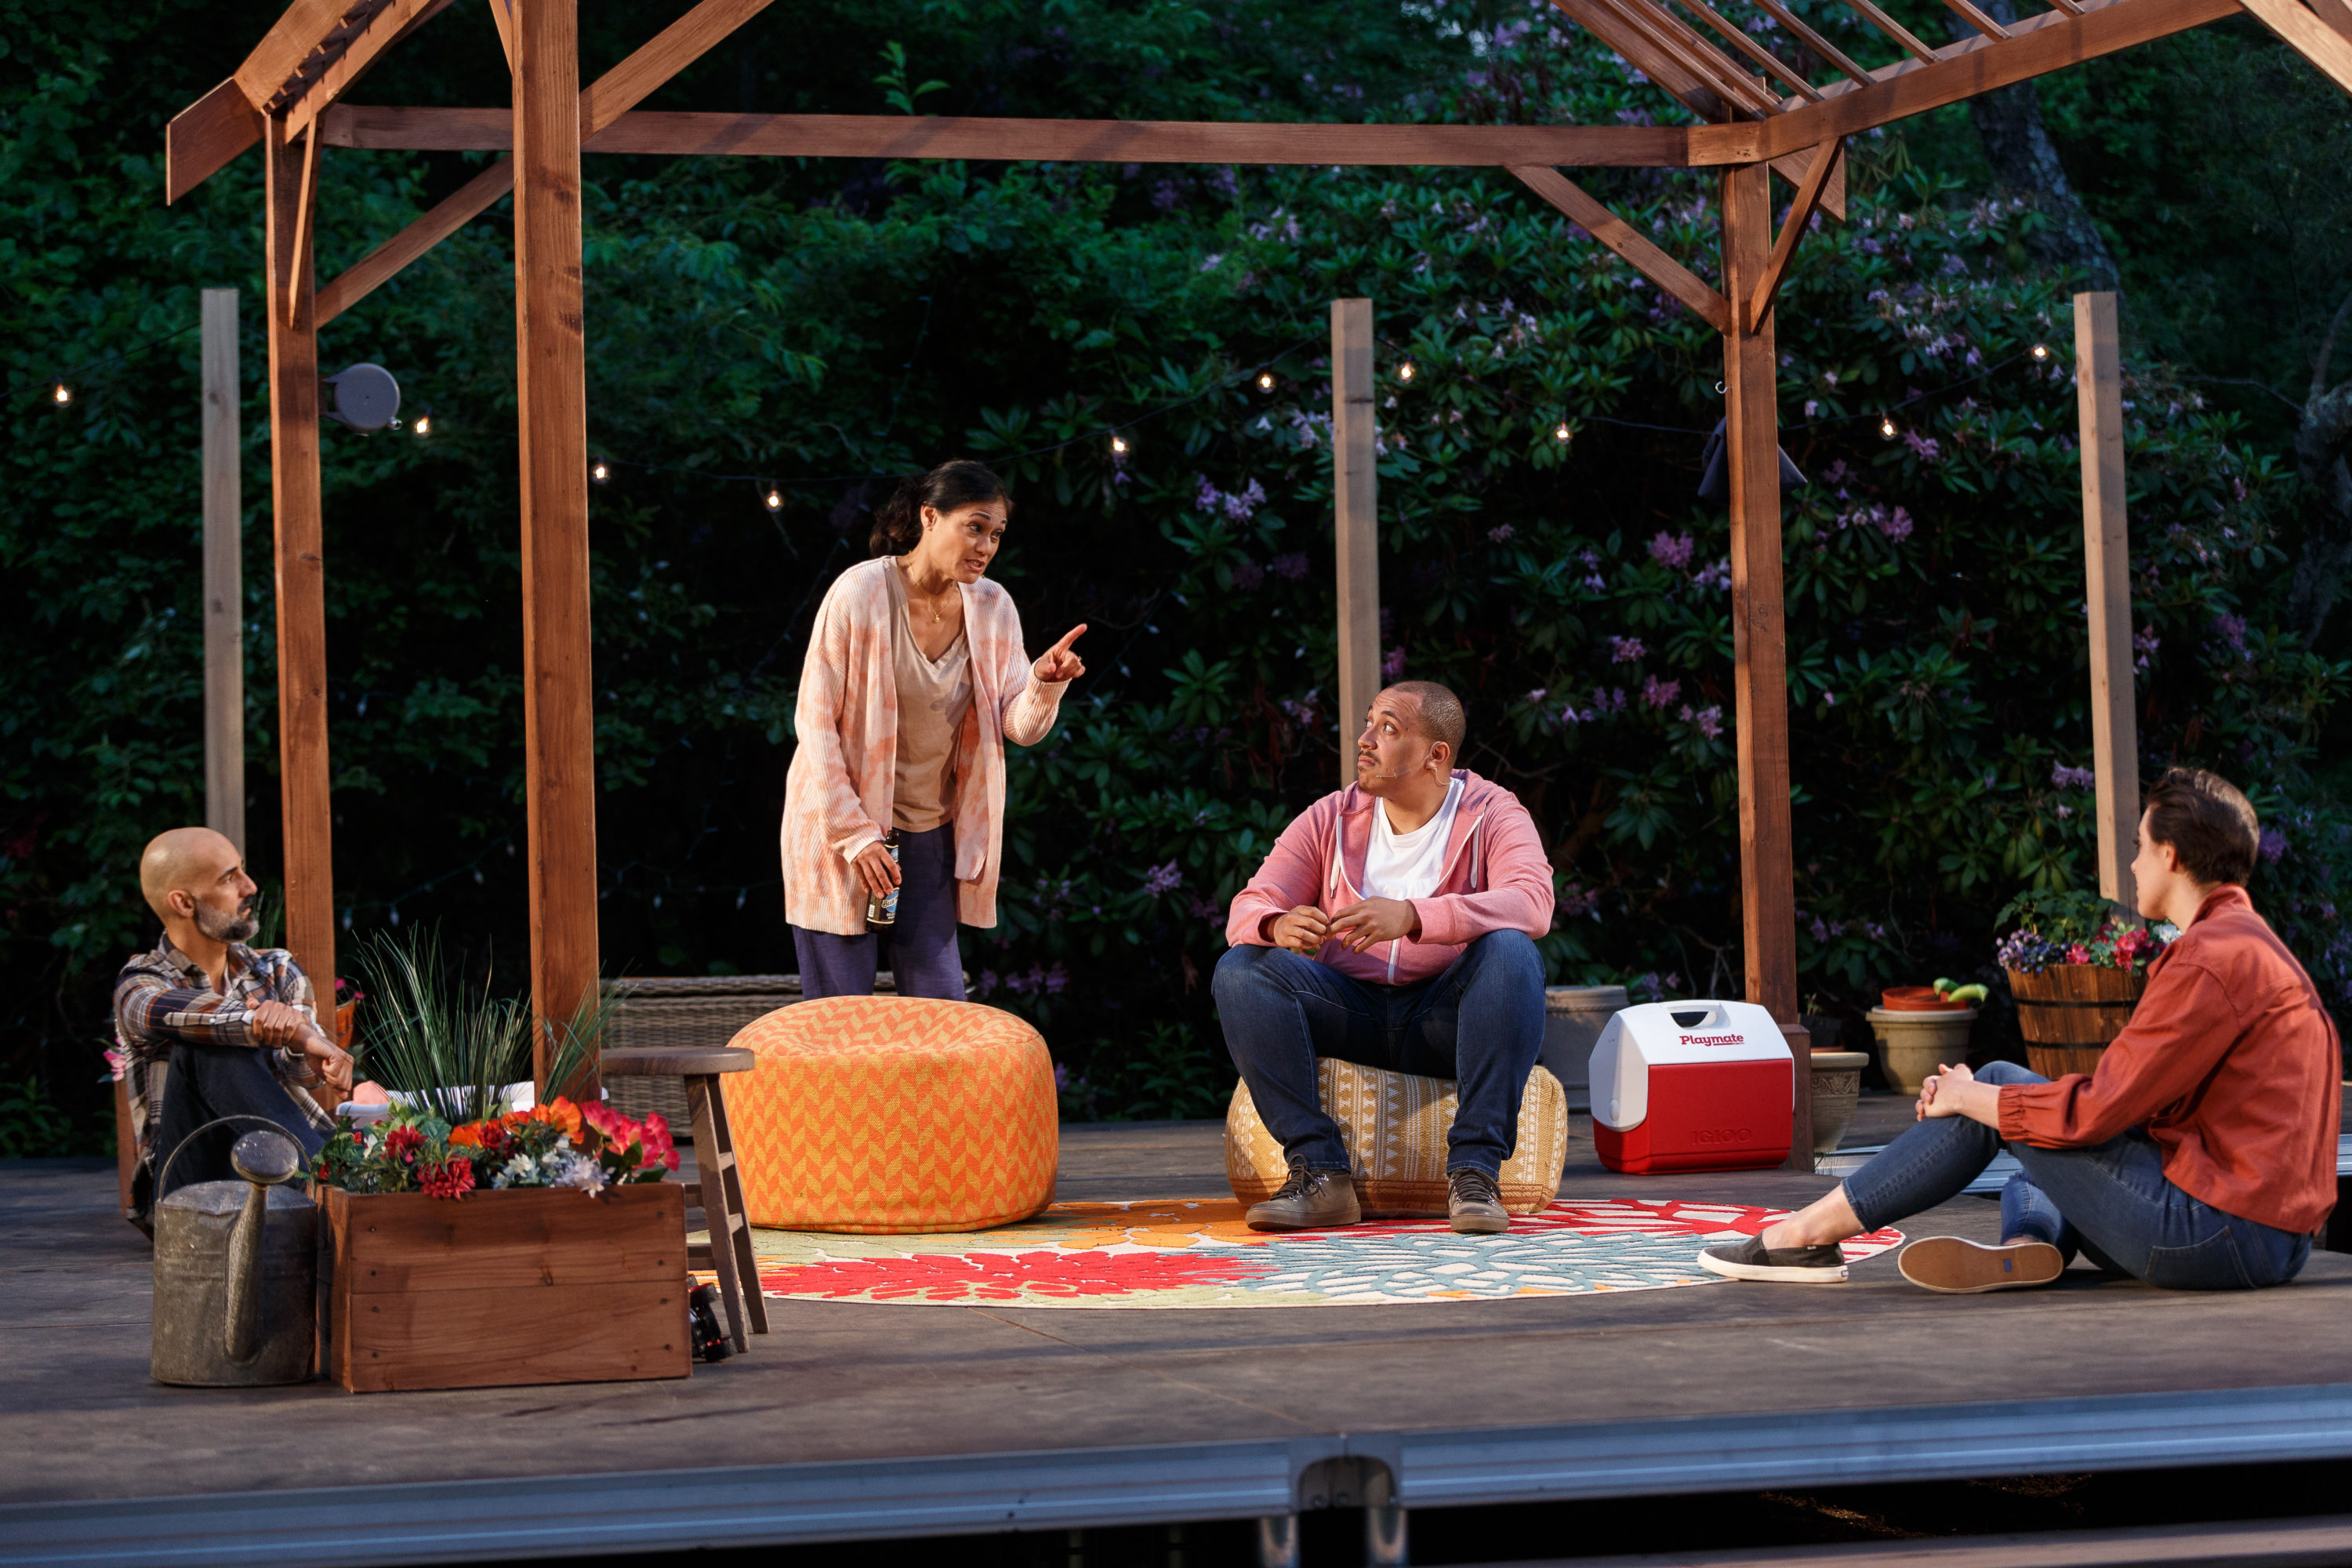 """Nael Nacer, Celeste Oliva, Adrian Peguero and Kelly Chick in """"Tiny Beautiful Things"""" by Gloucester Stage Company. Performed at Windhover Arts Center in Rockport. (Courtesy Jason Grow)"""